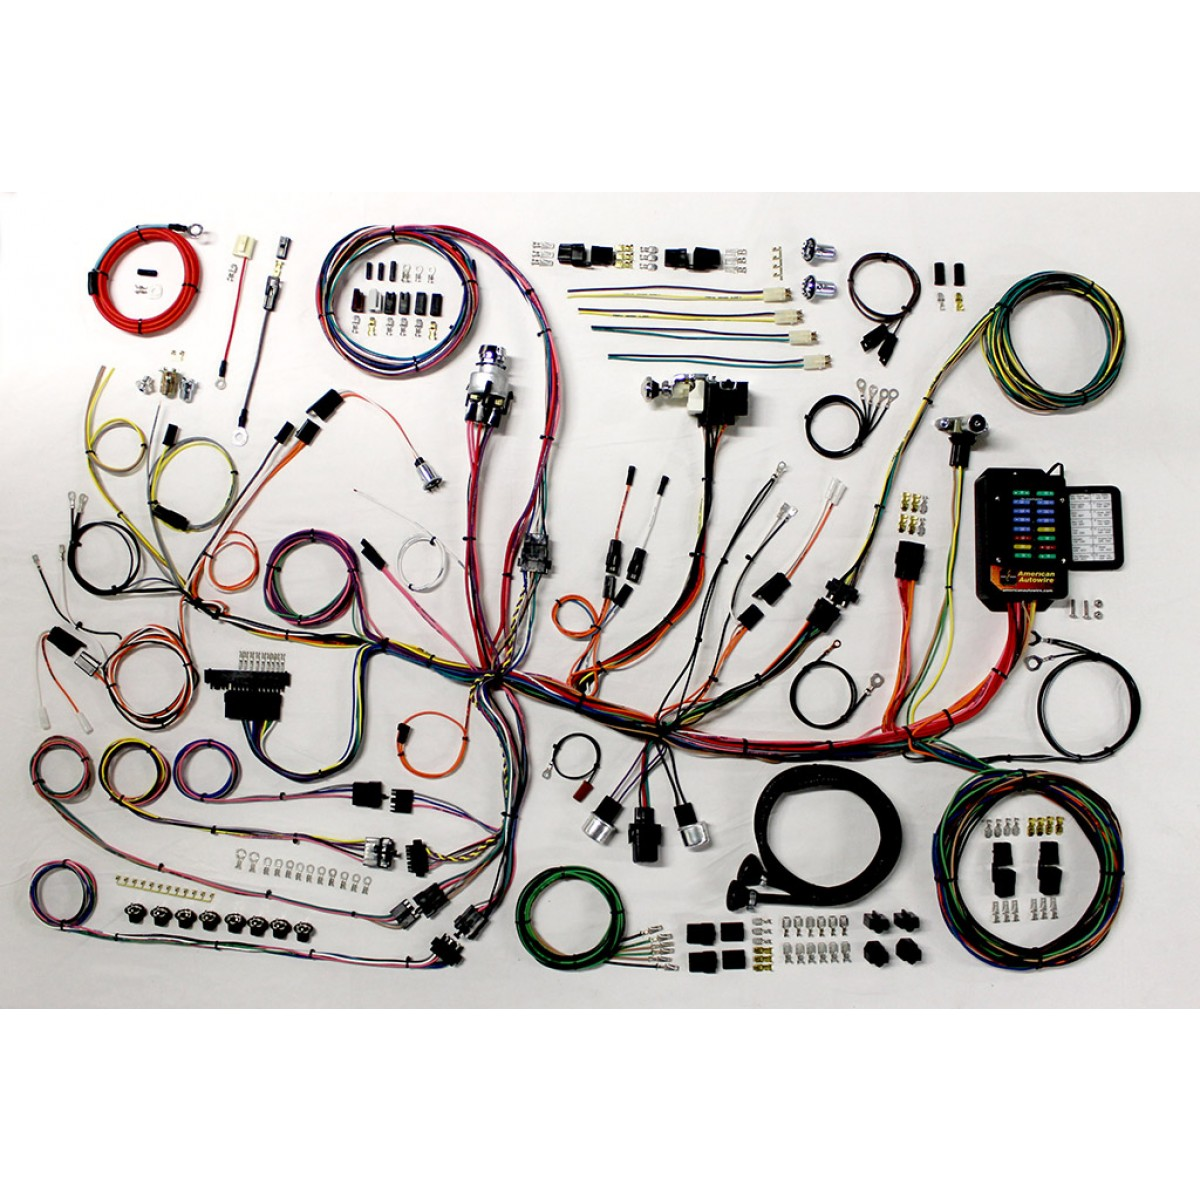 1953 1962 Corvette Wire Harness Complete Wiring Kit 62 Chevy Headlight Switch Diagram Schematic Part 510267